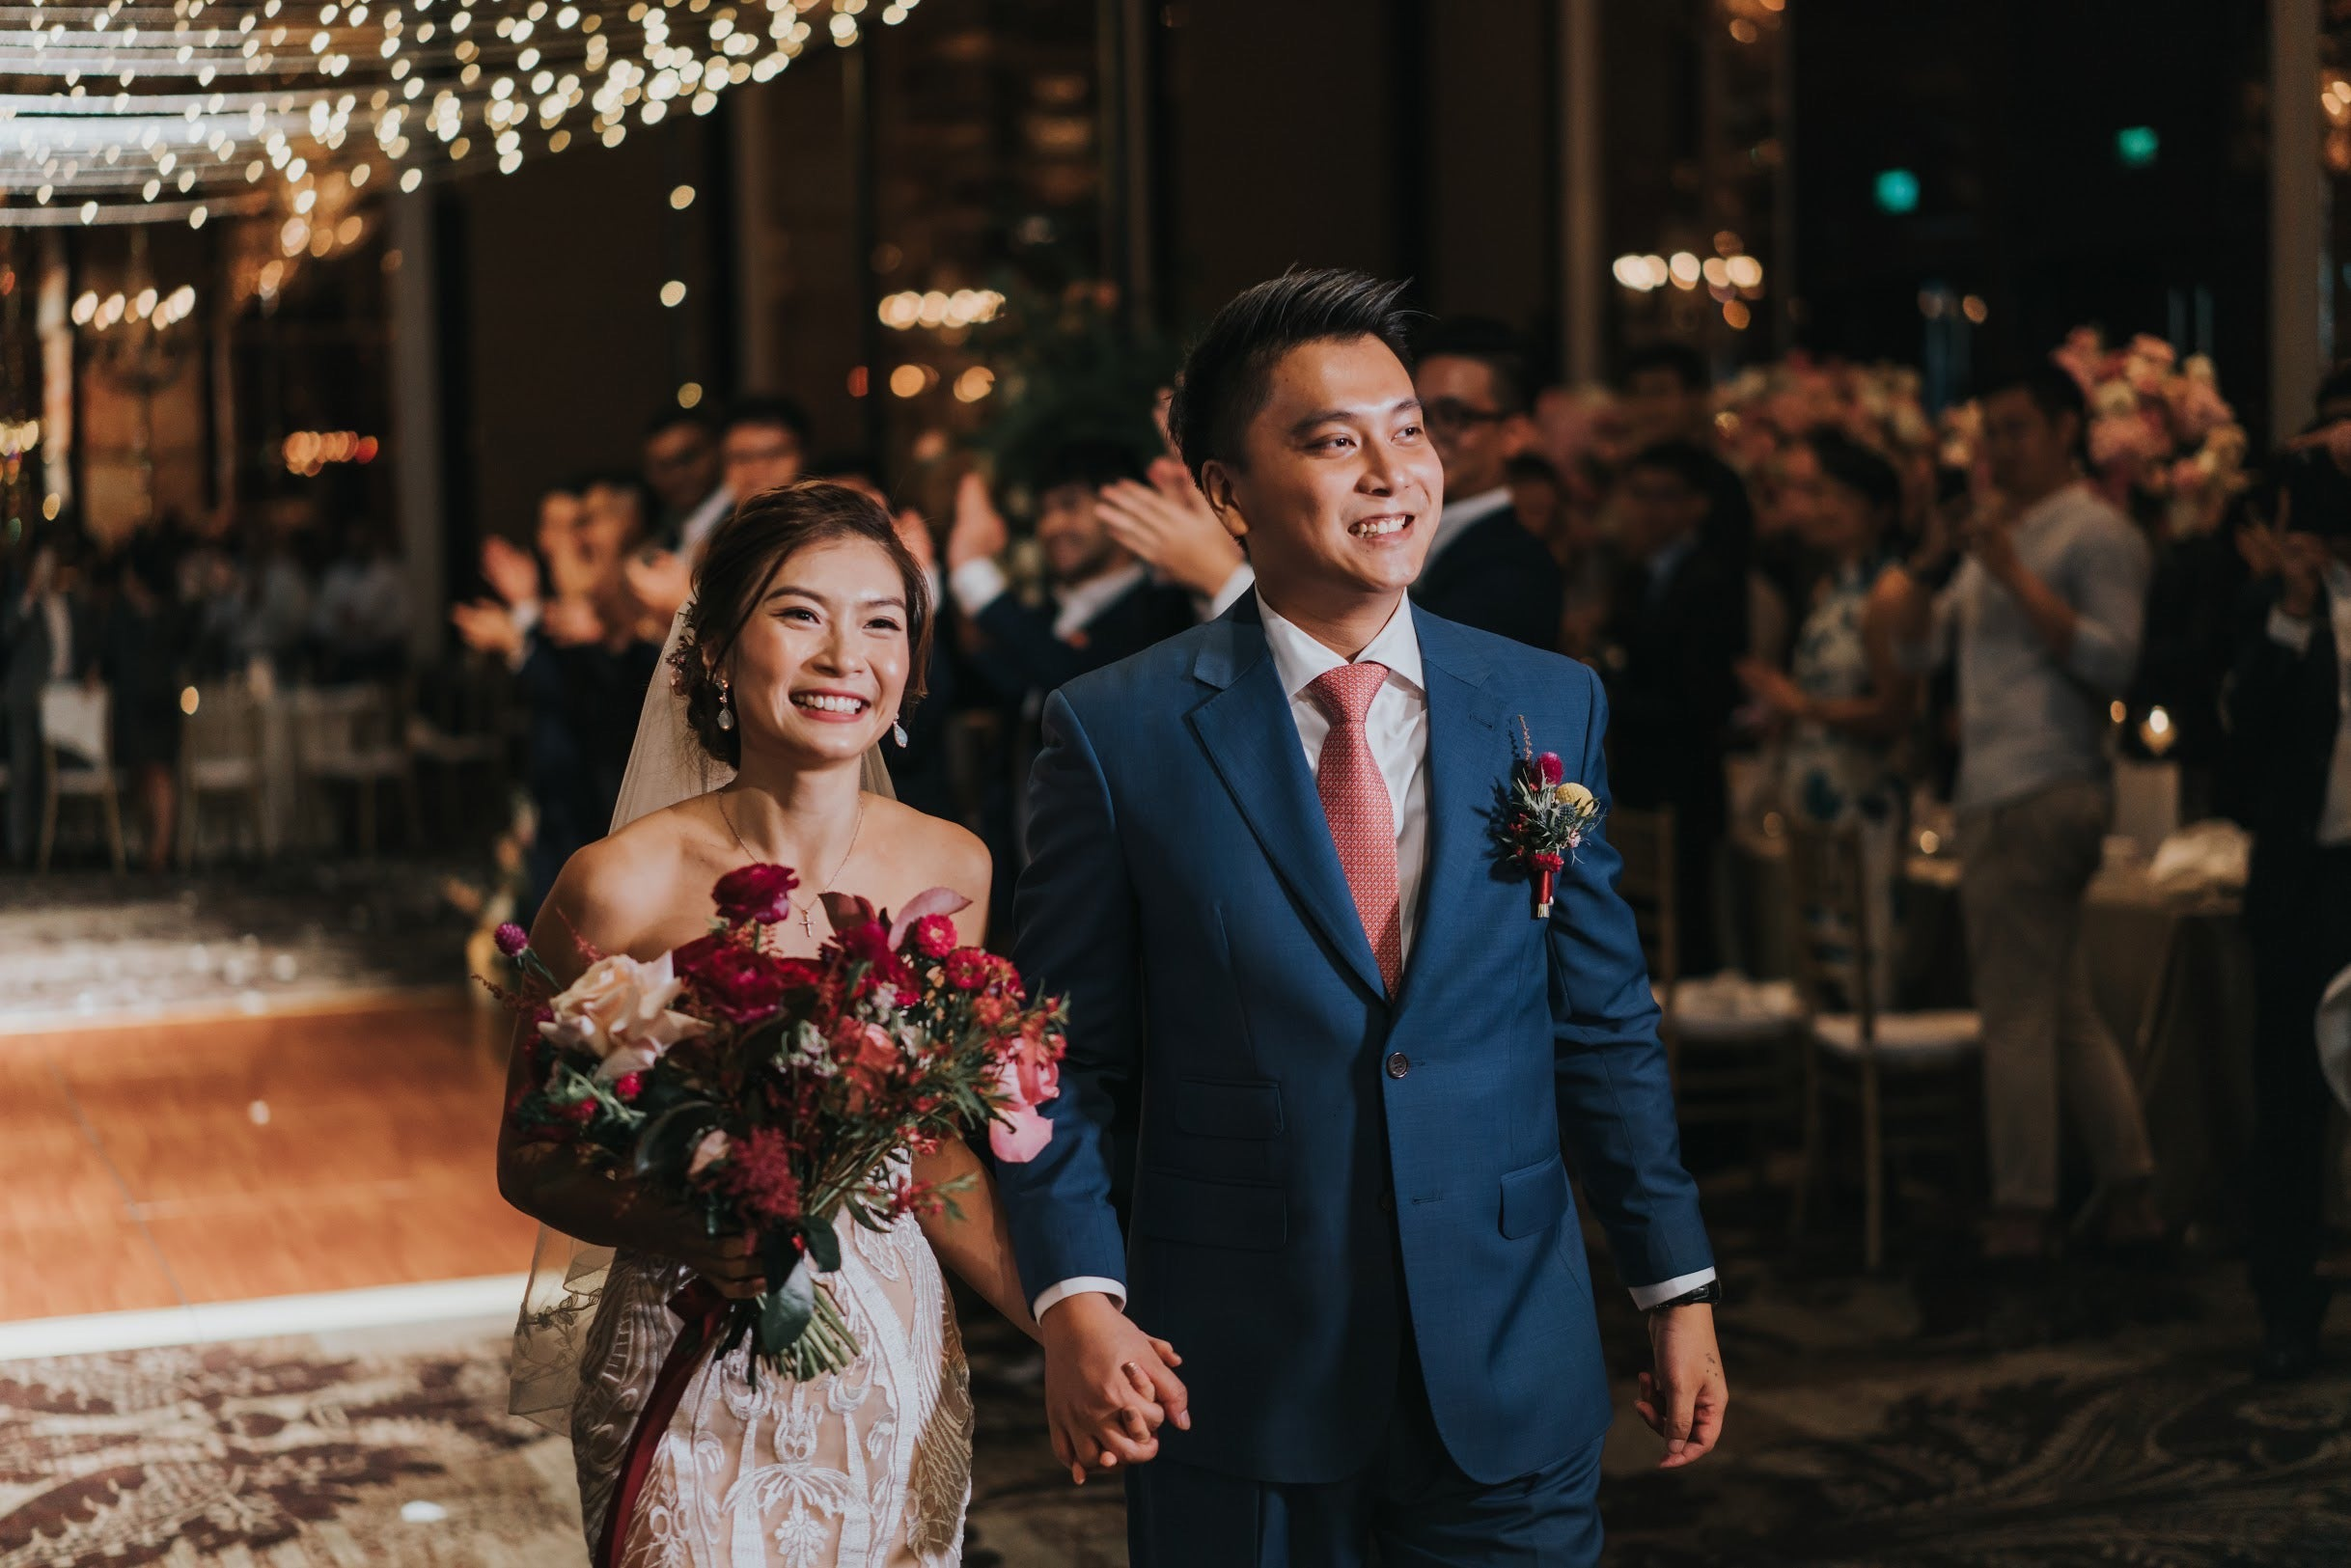 Wedding couple first march in at St Regis aisle of fairy light decor